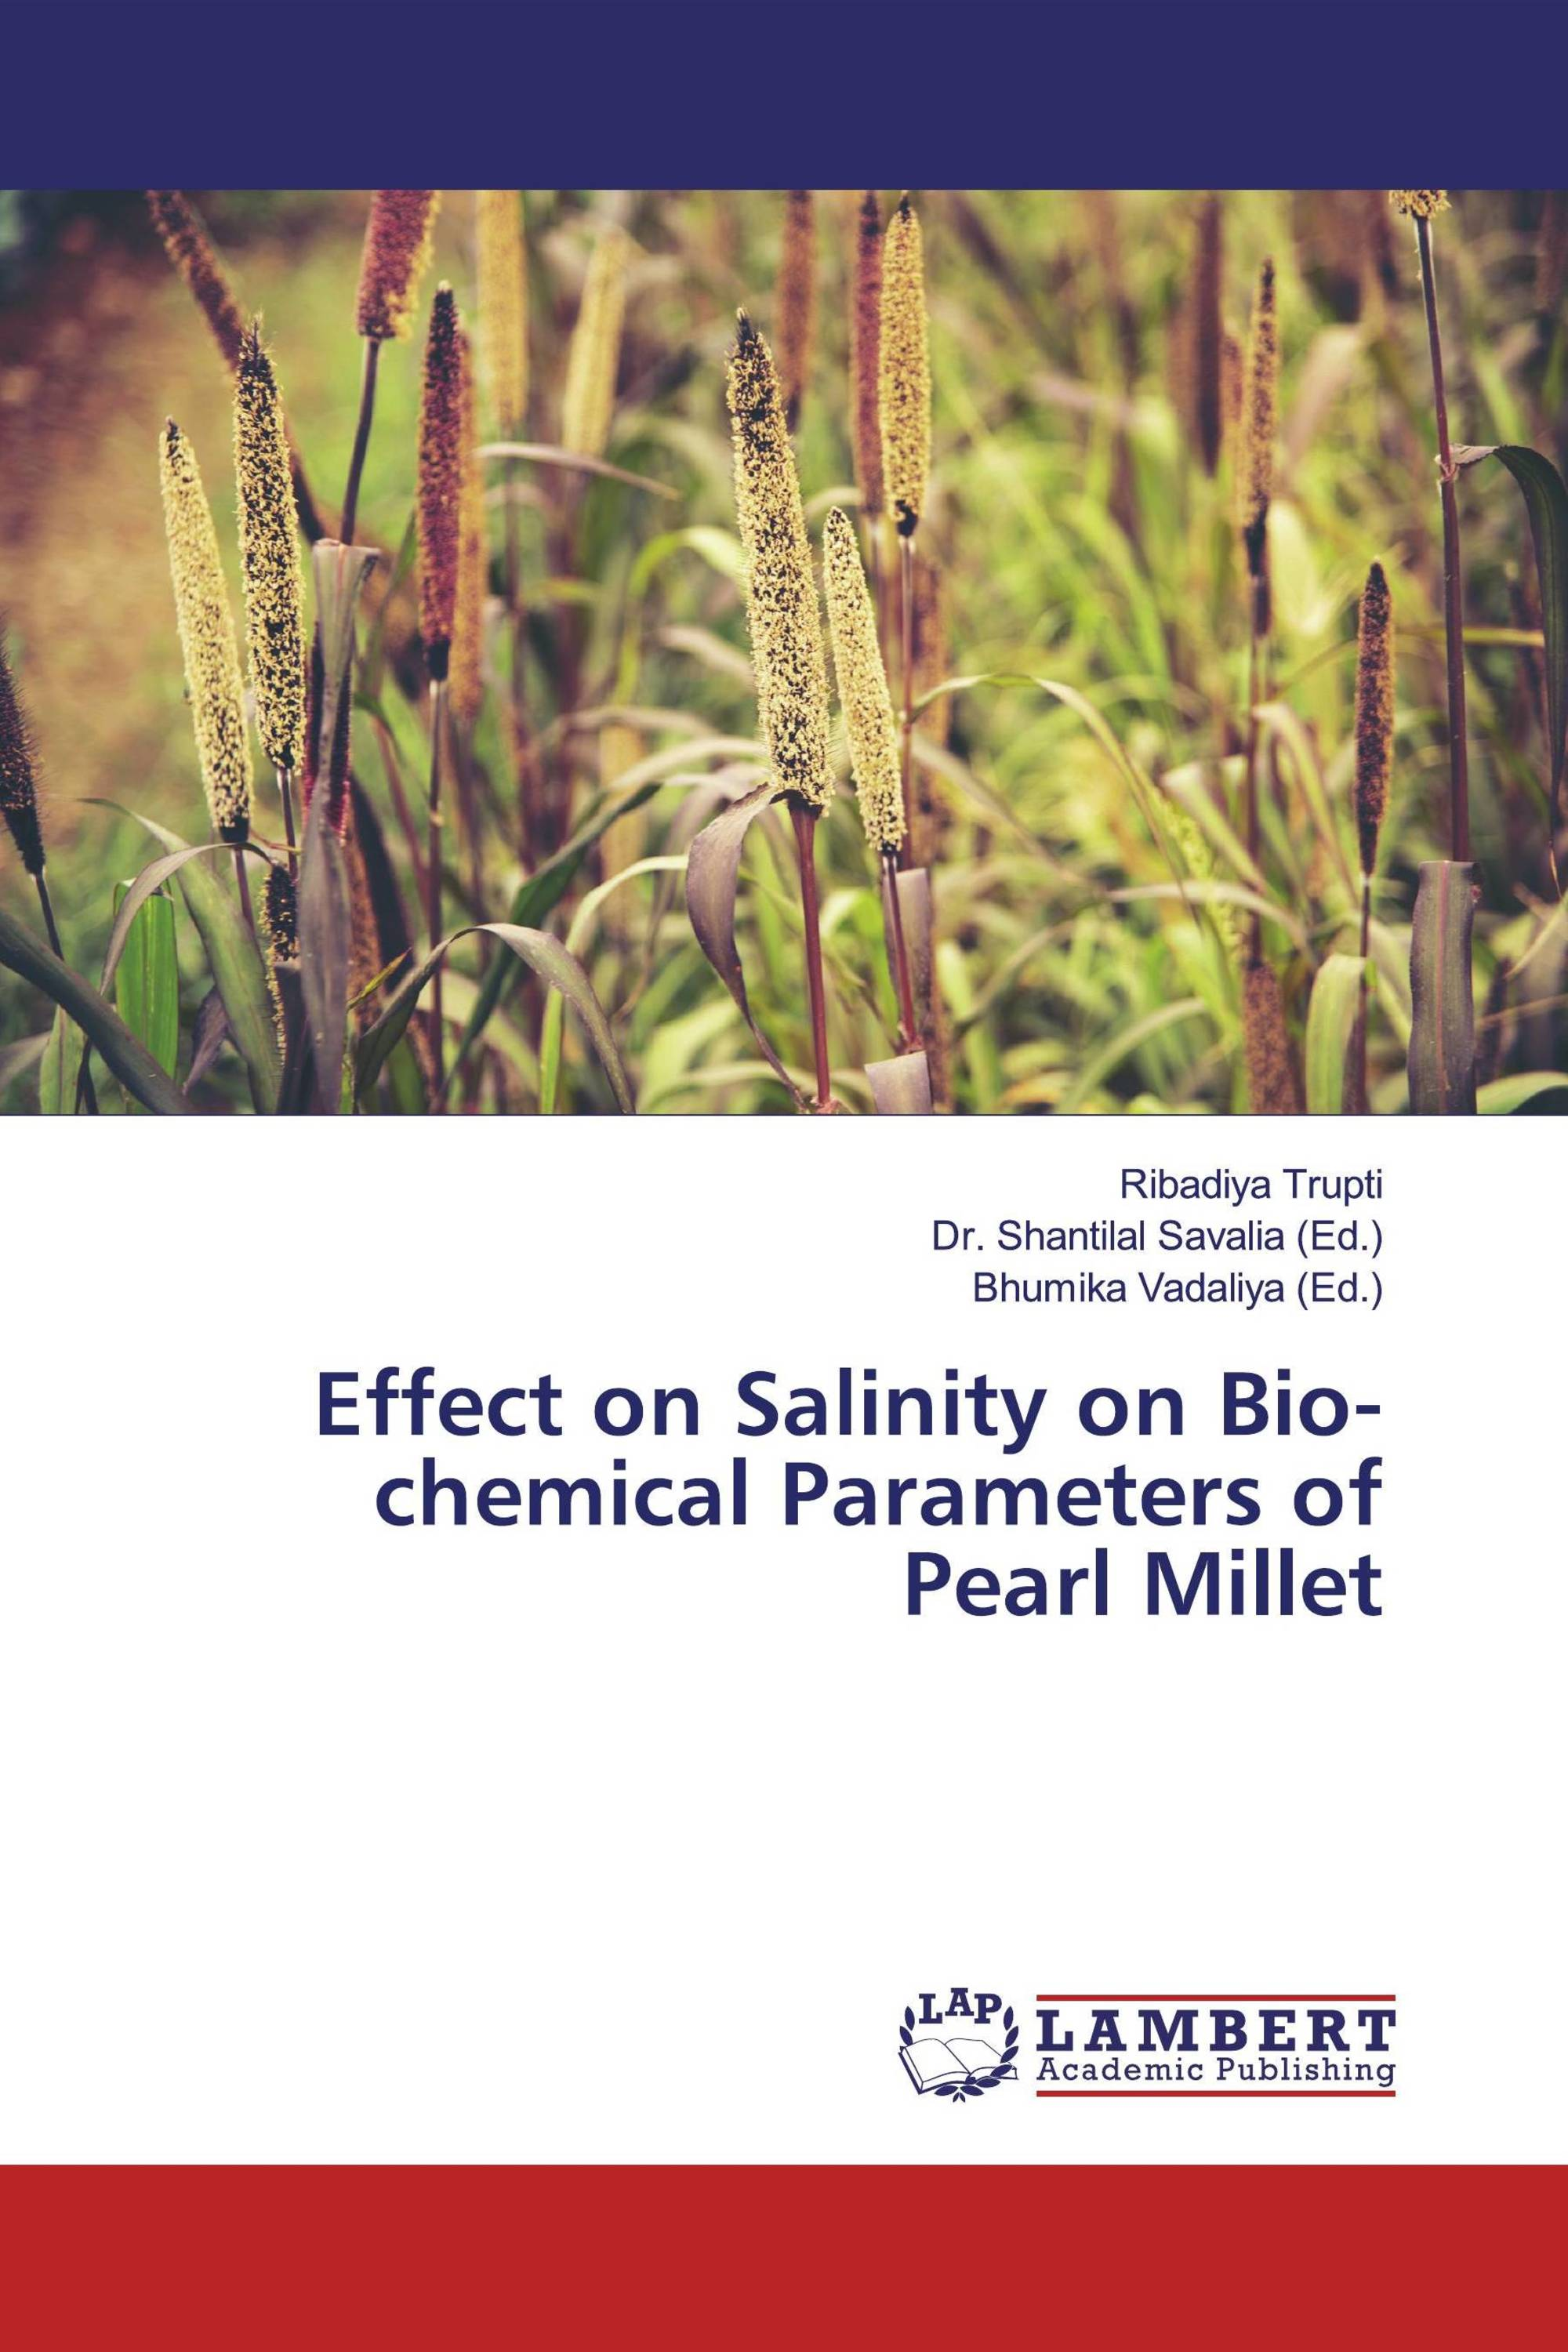 Effect on Salinity on Bio-chemical Parameters of Pearl Millet